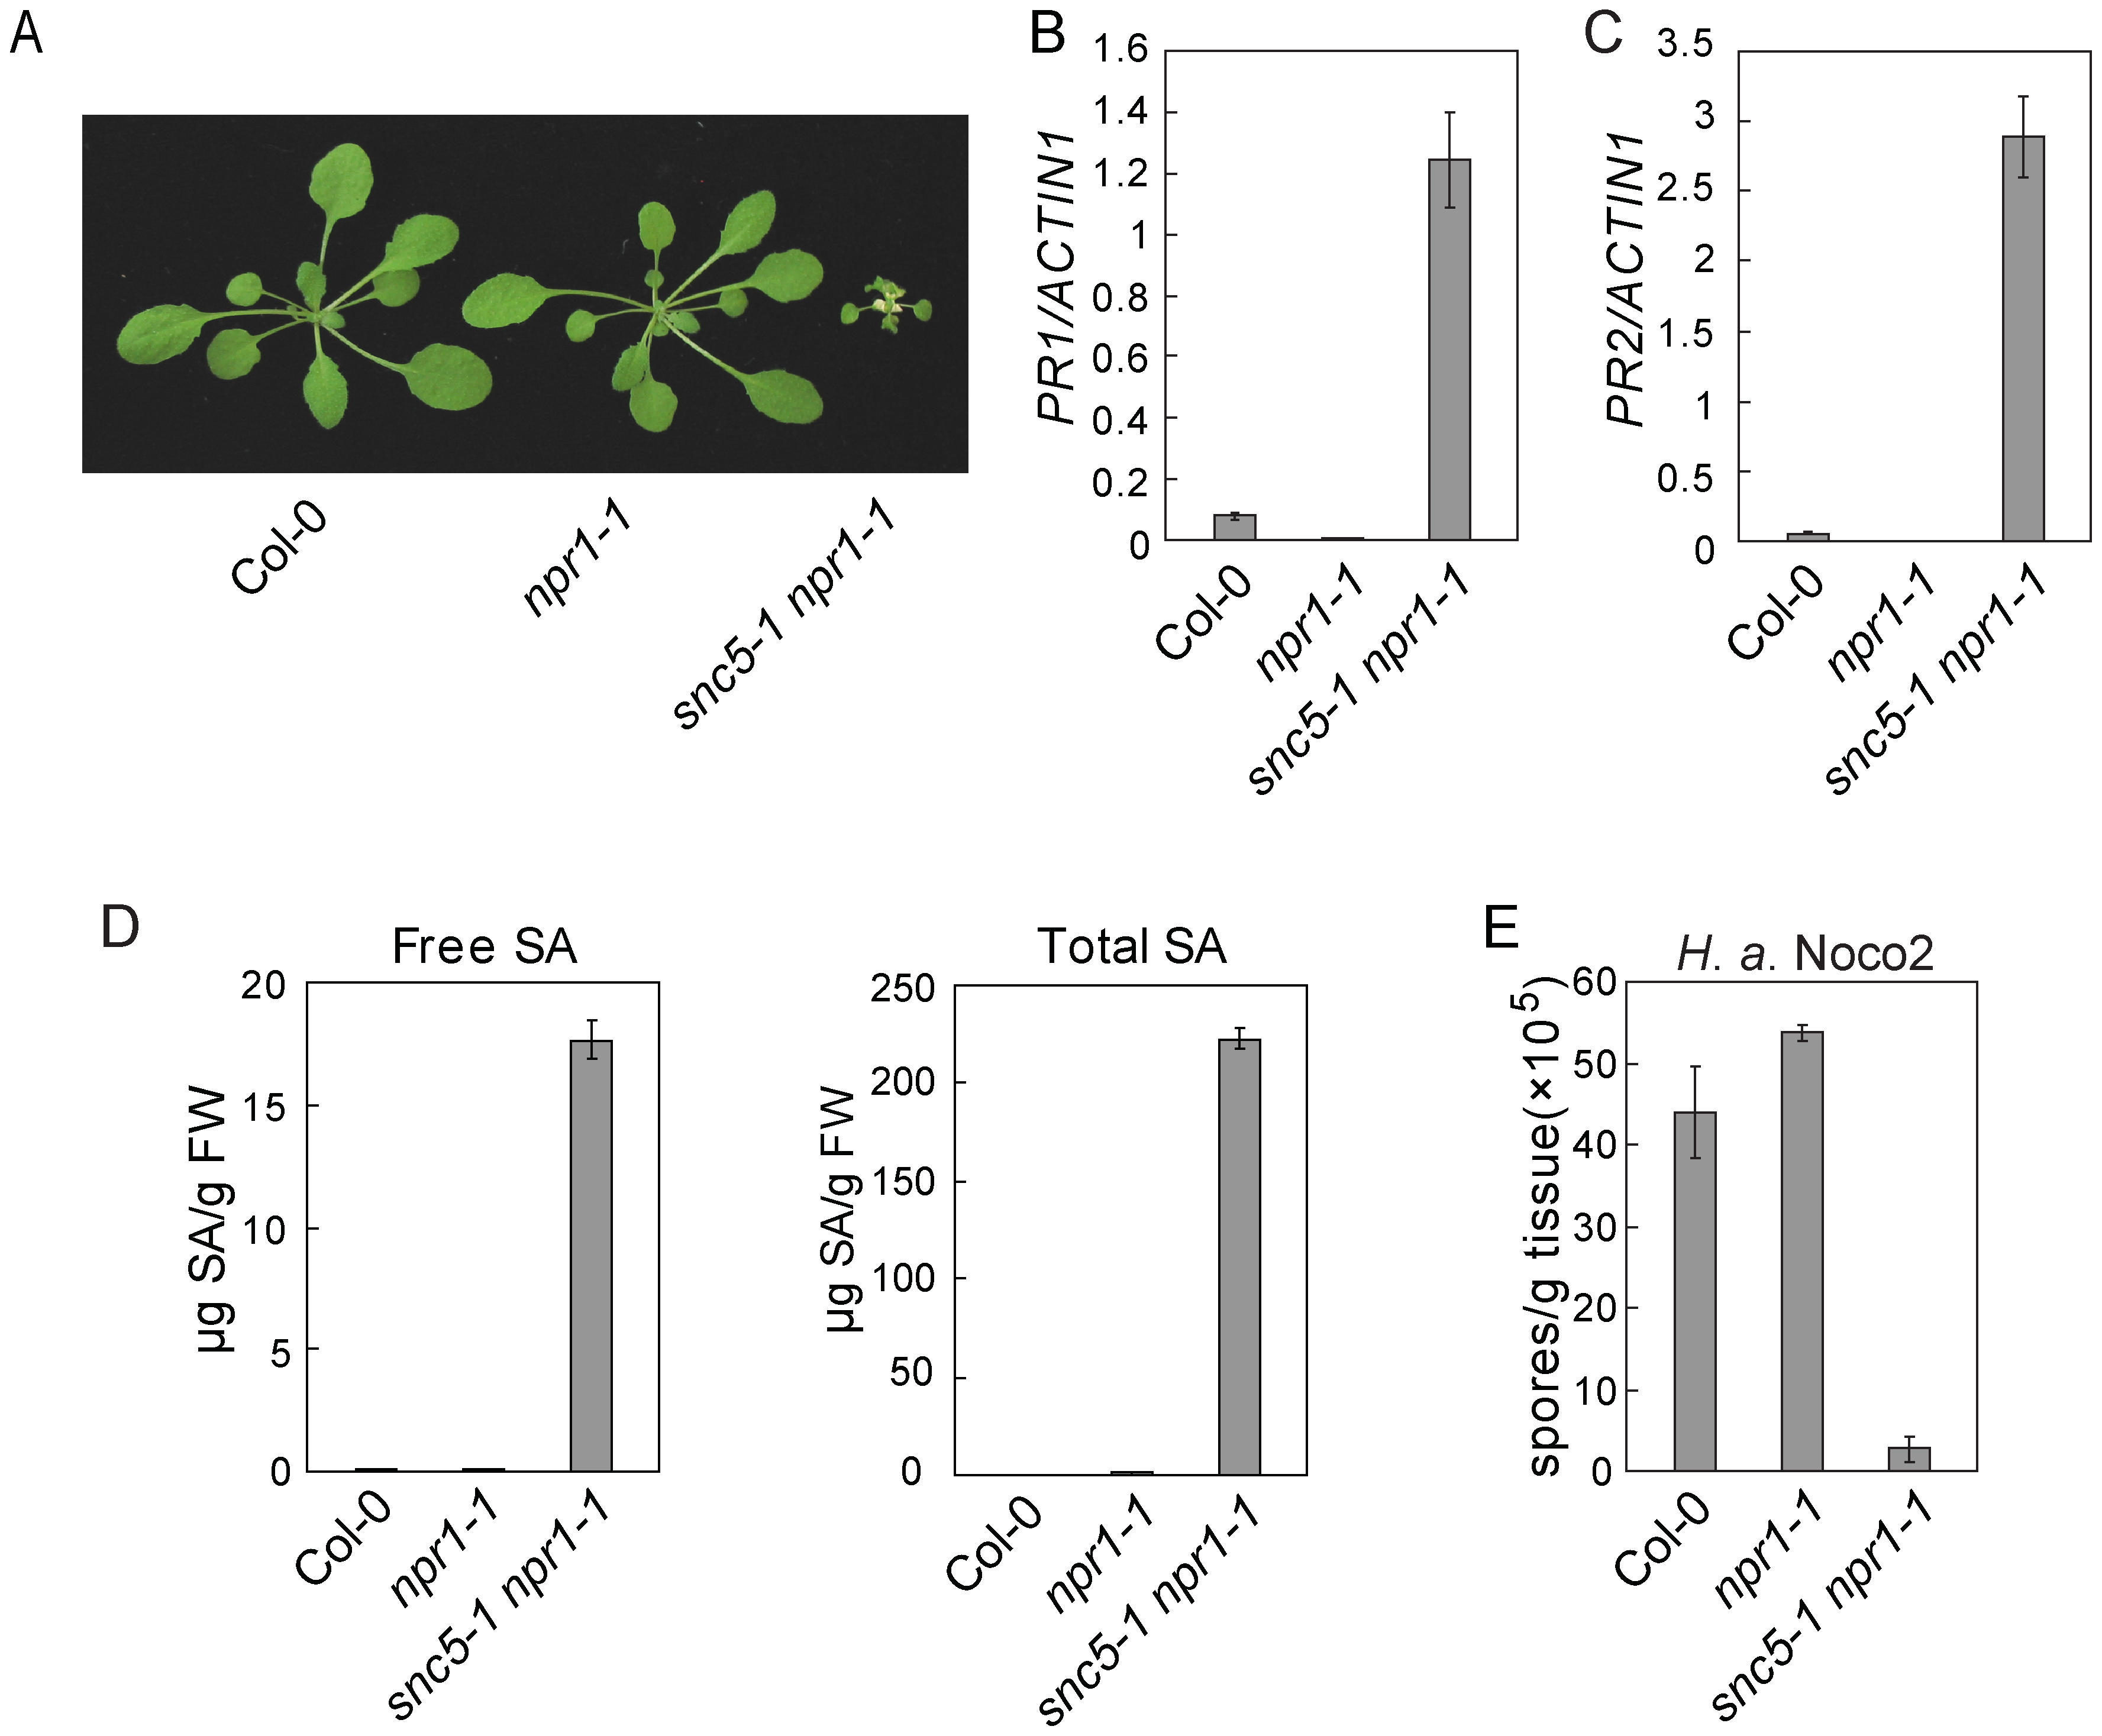 Defense responses are constitutively activated in <i>snc5-1 npr1-1</i>.